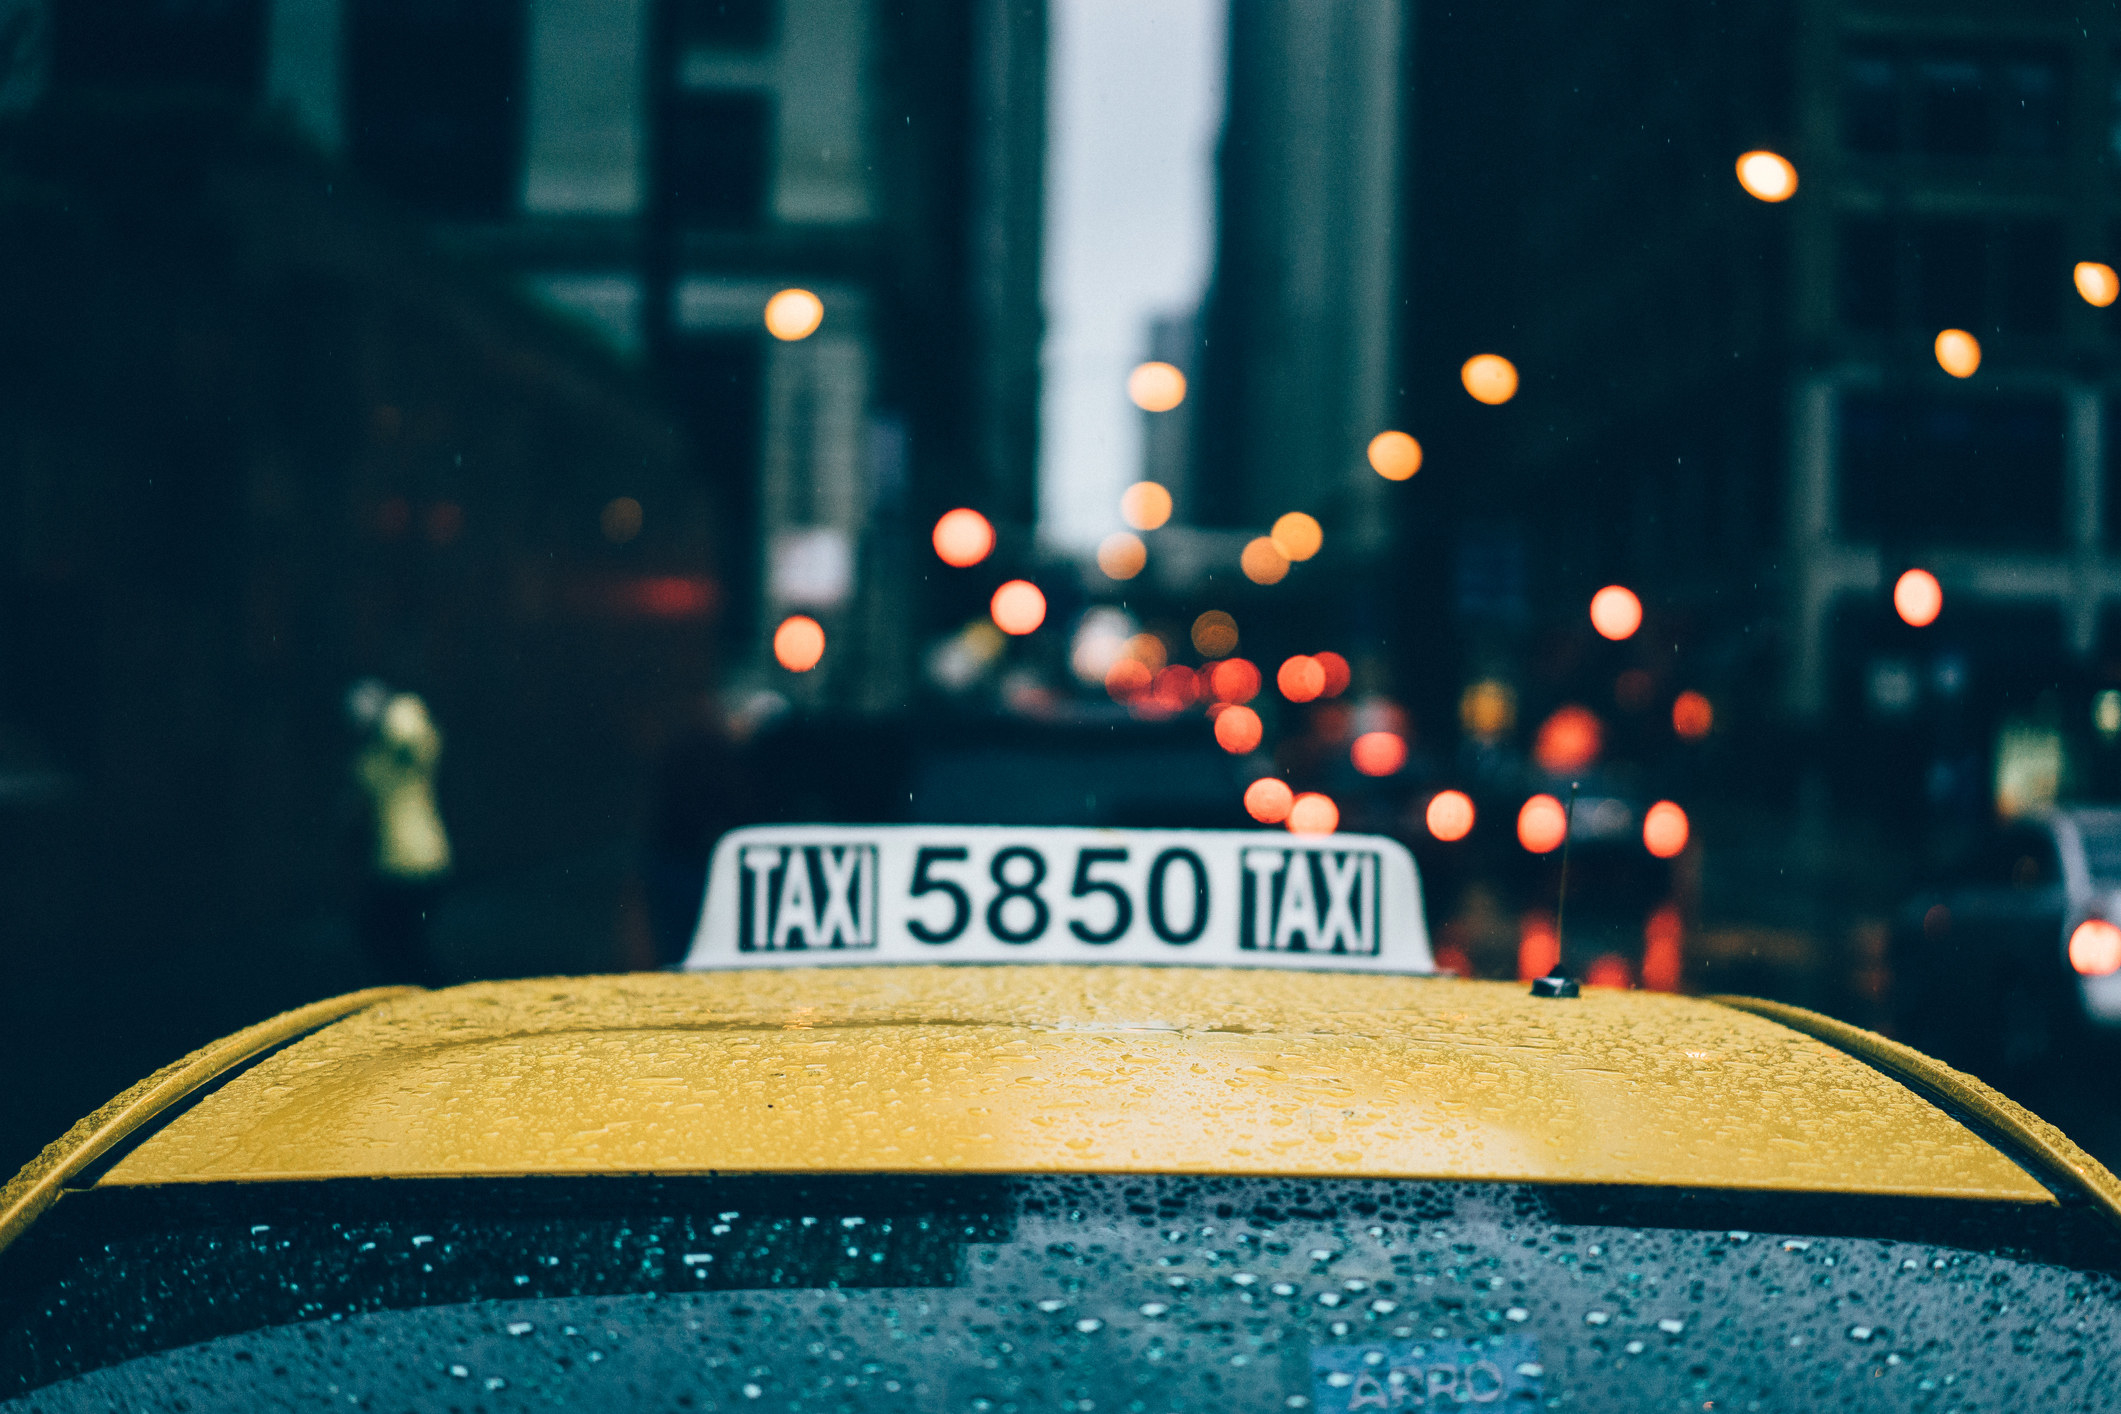 A yellow taxi in NYC.